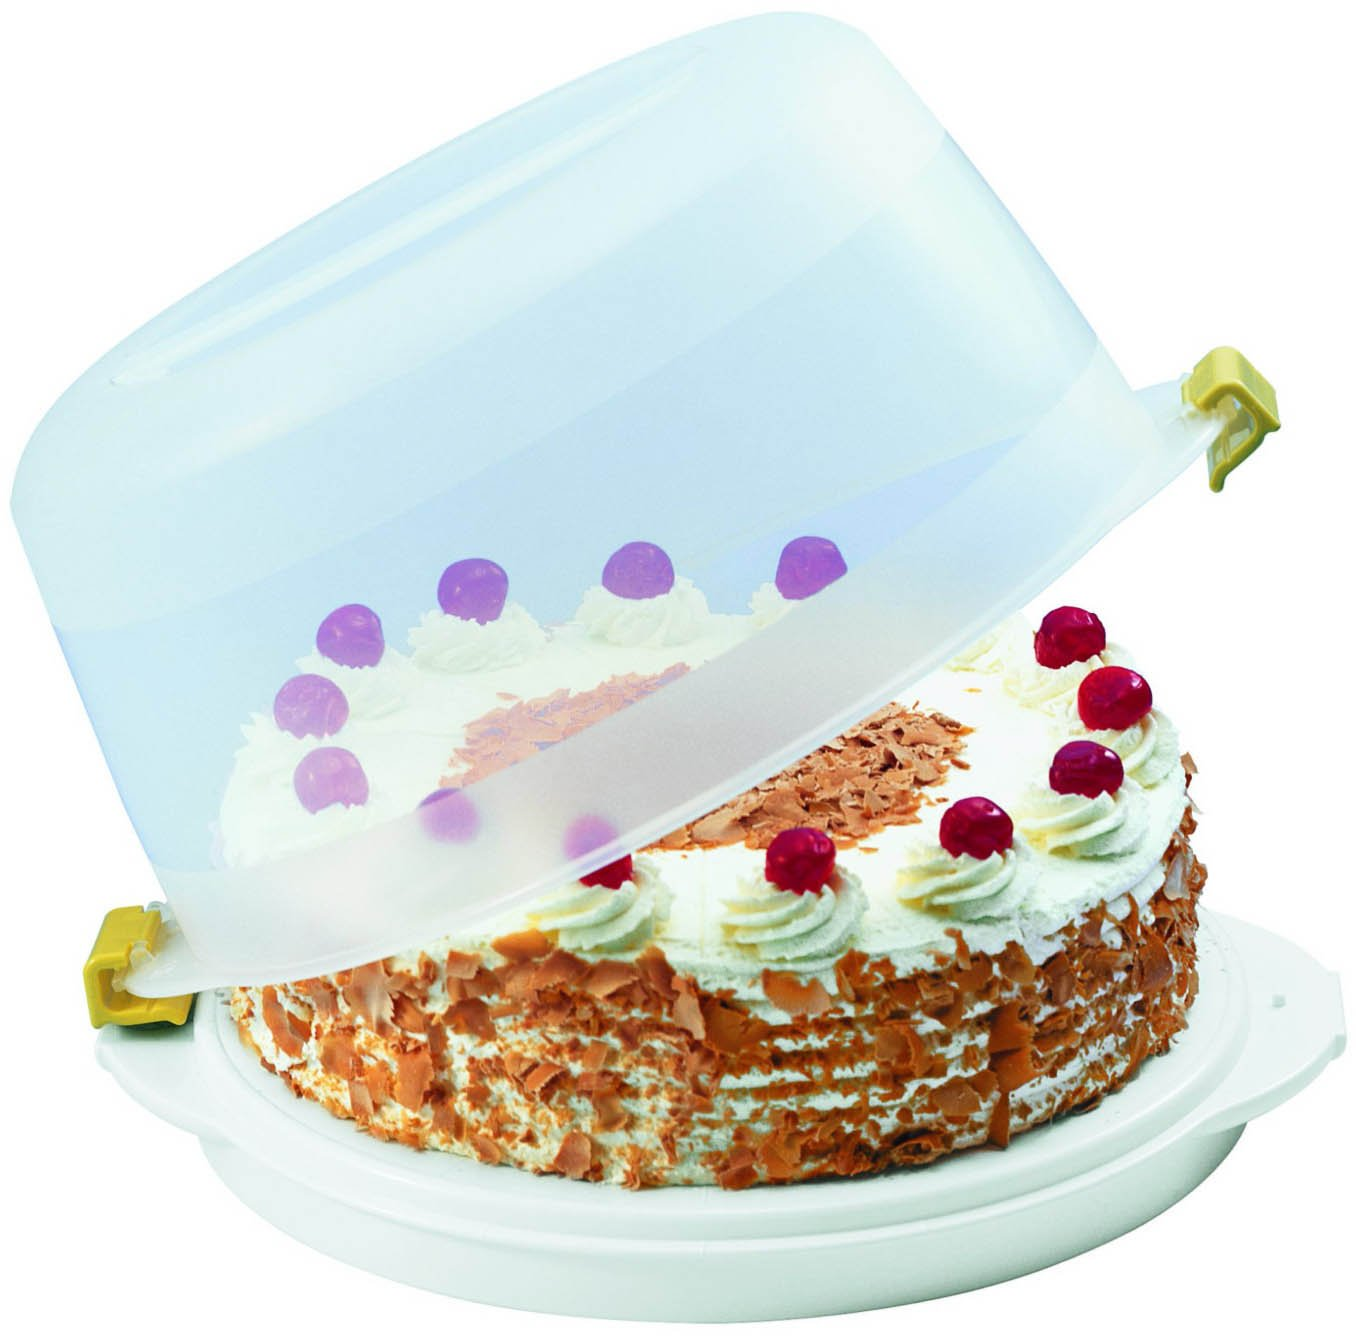 Dr. Oetker 1486 Kuchentransportbox Cool